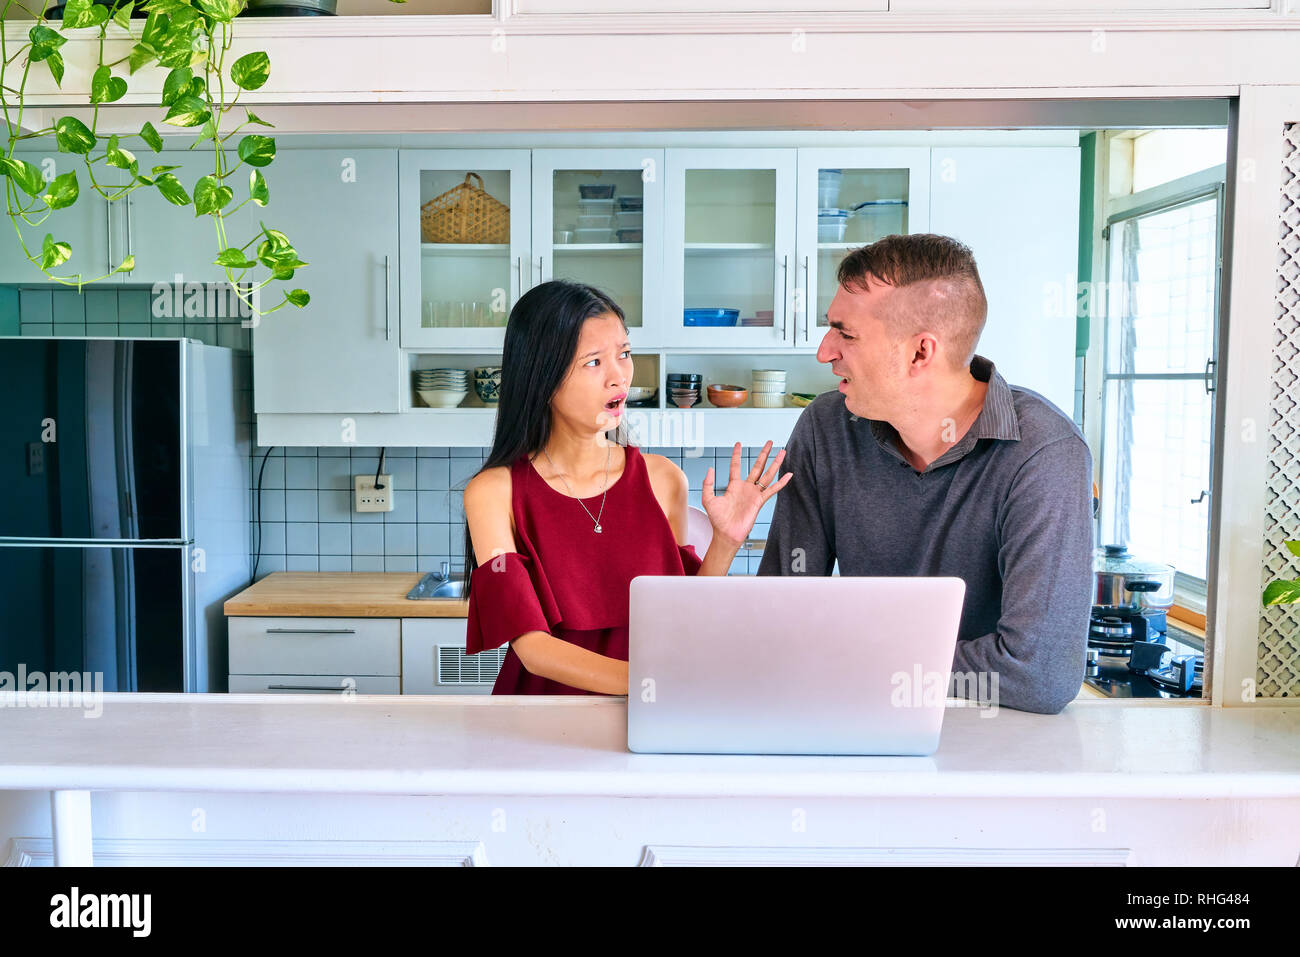 Lovely couple posing - arguing and serious - Stock Image